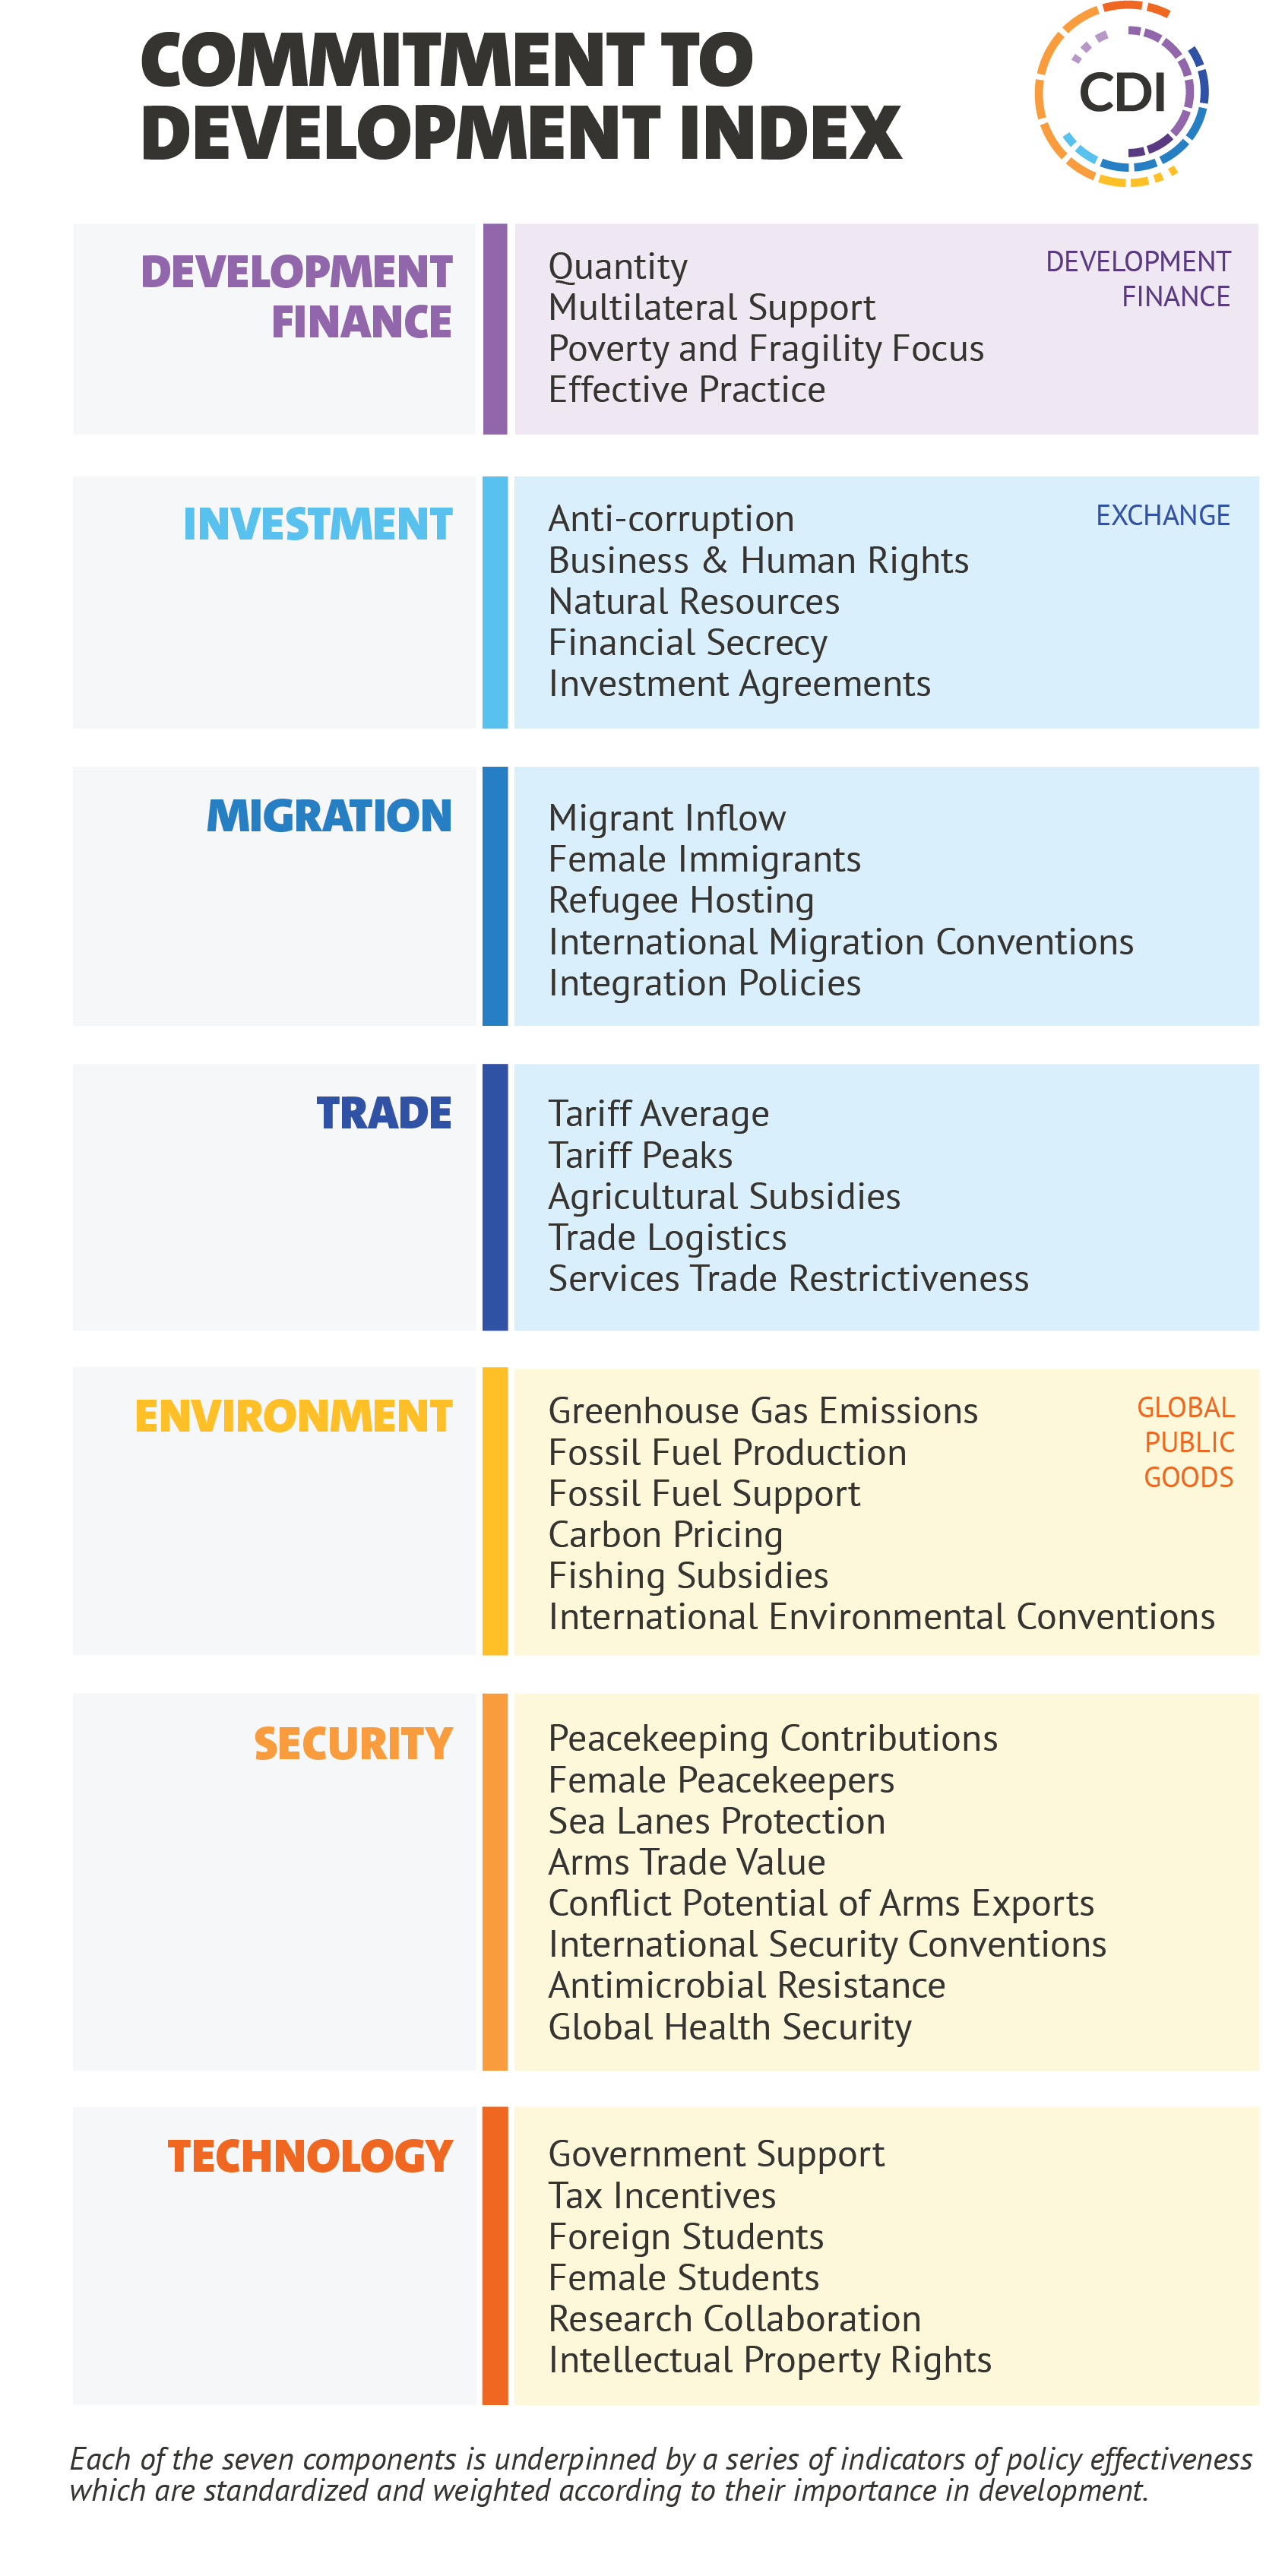 The full organogram of the 2020 commitment to development index